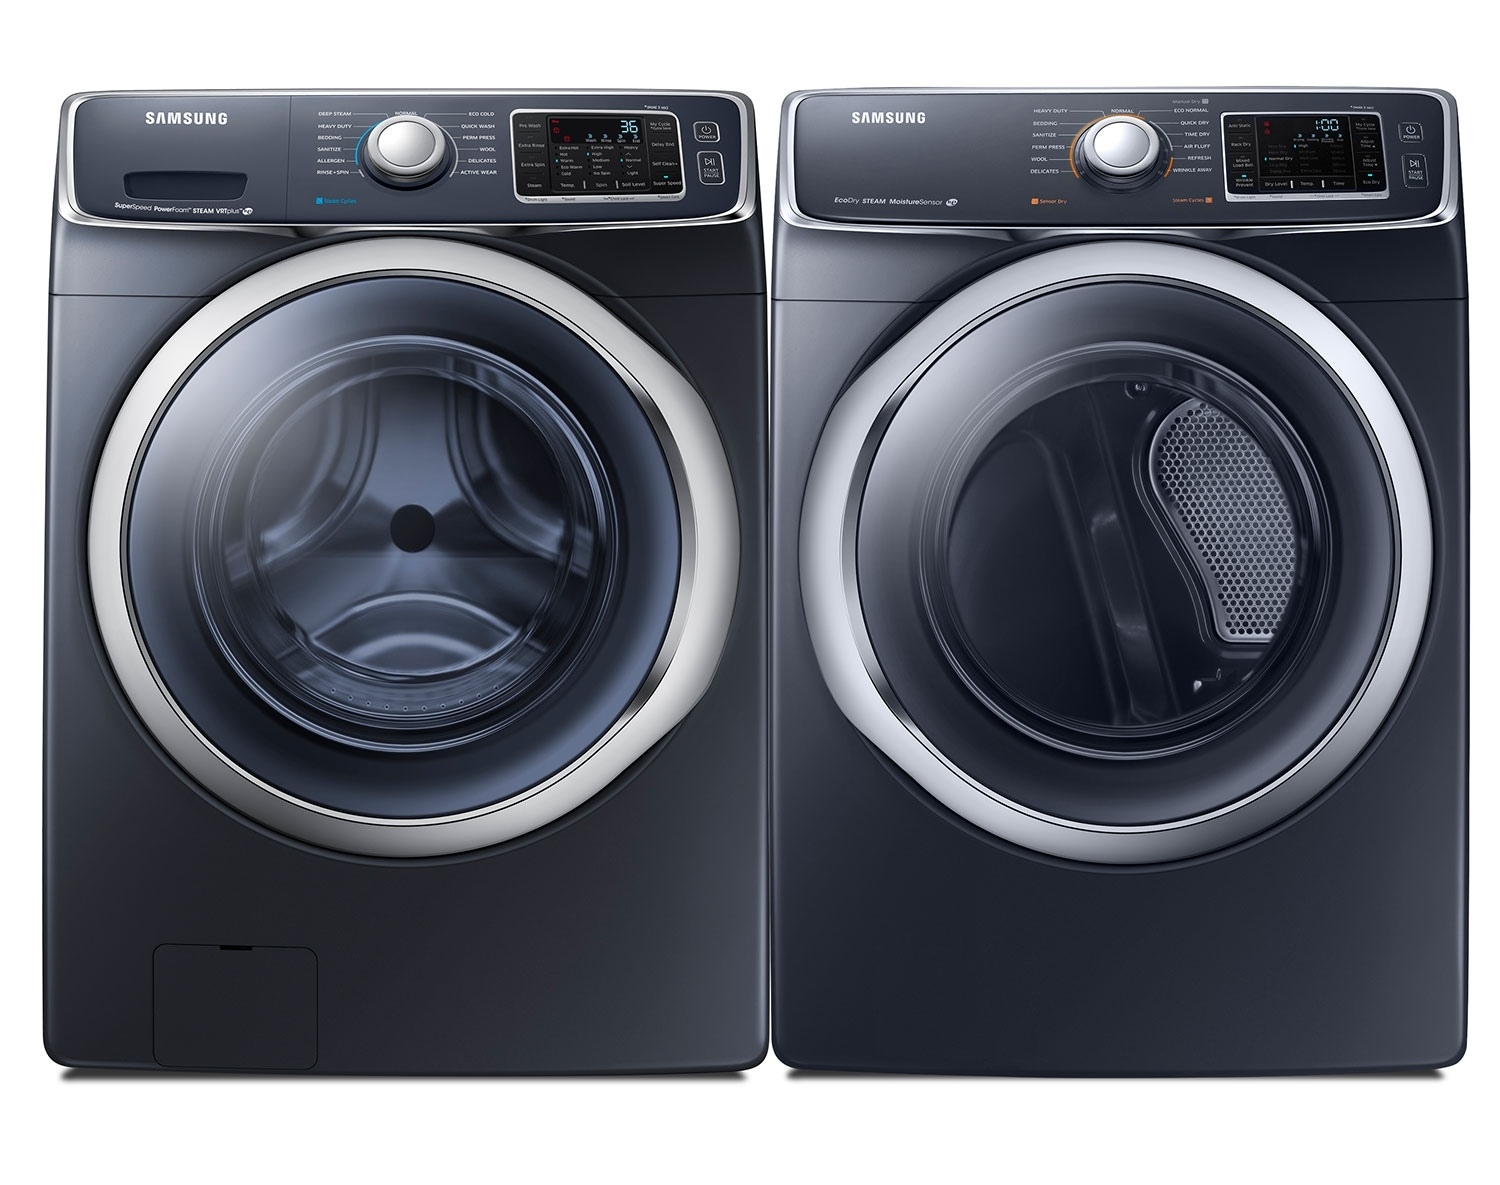 [Samsung Black Front-Load Laundry Pair]